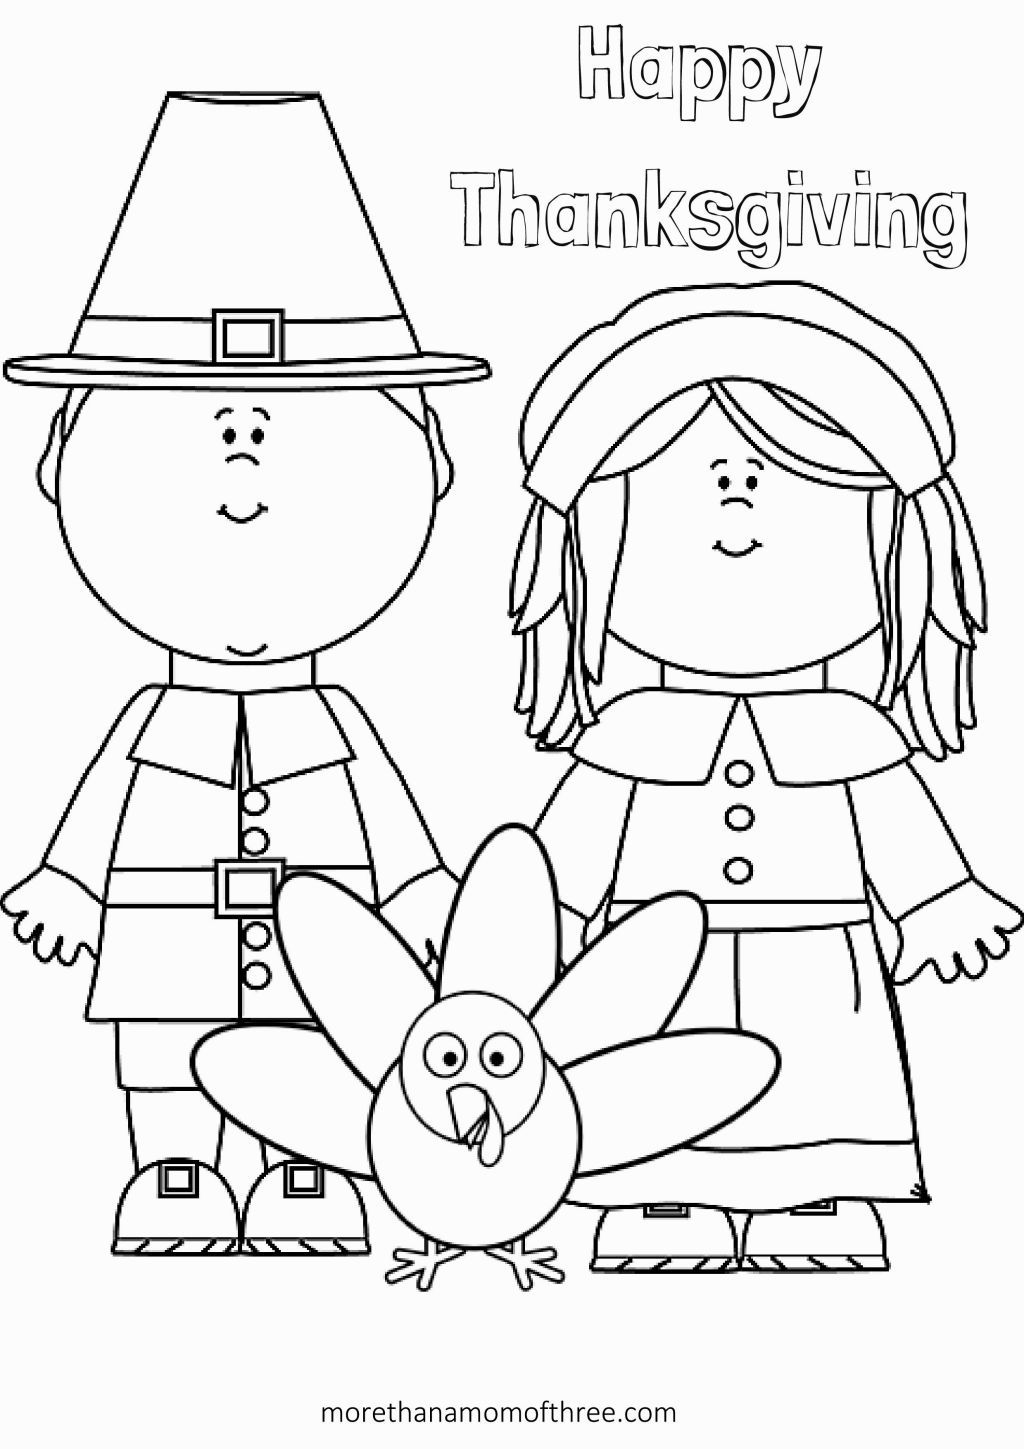 Thanksgiving Preschool Coloring Pages Az Coloring Pages Preschool Thanksgiving Coloring Pages